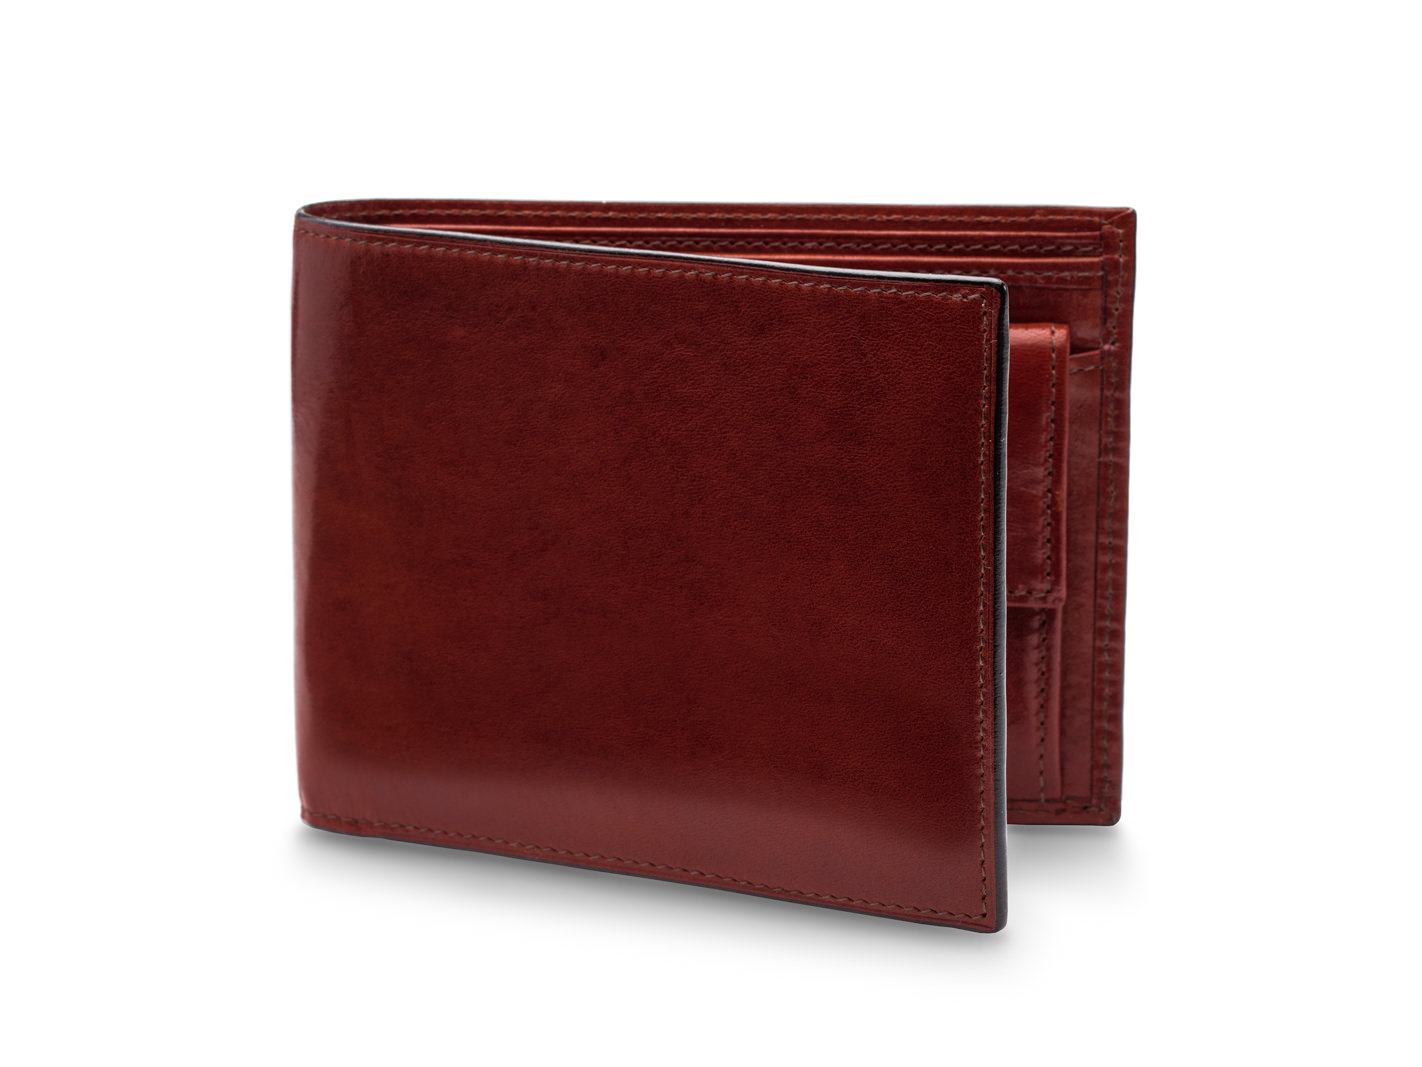 RFID Euro-Size Wallet w/Coin Pocket-58 Dark Brown - 58 Dark Brown